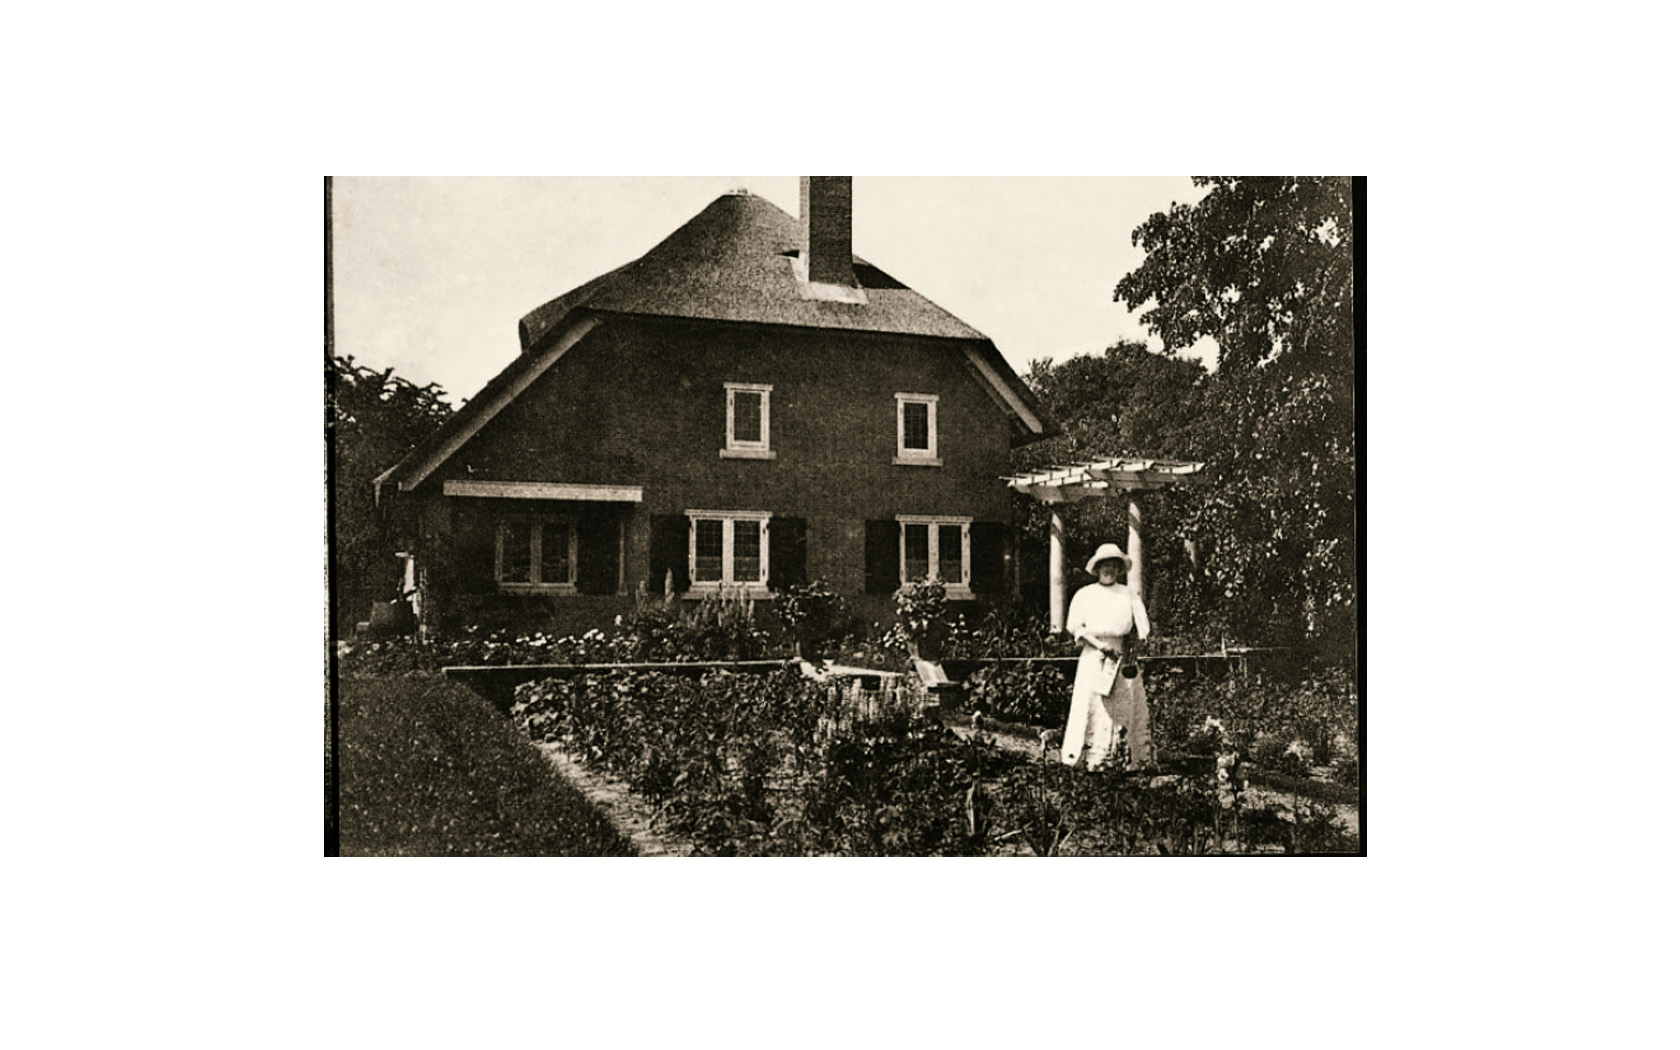 Its heart is the 1911 villa of William and Anna Singer, American art collectors, and artists, who moved to Laren because of its artistic scene and the inspiring landscape.